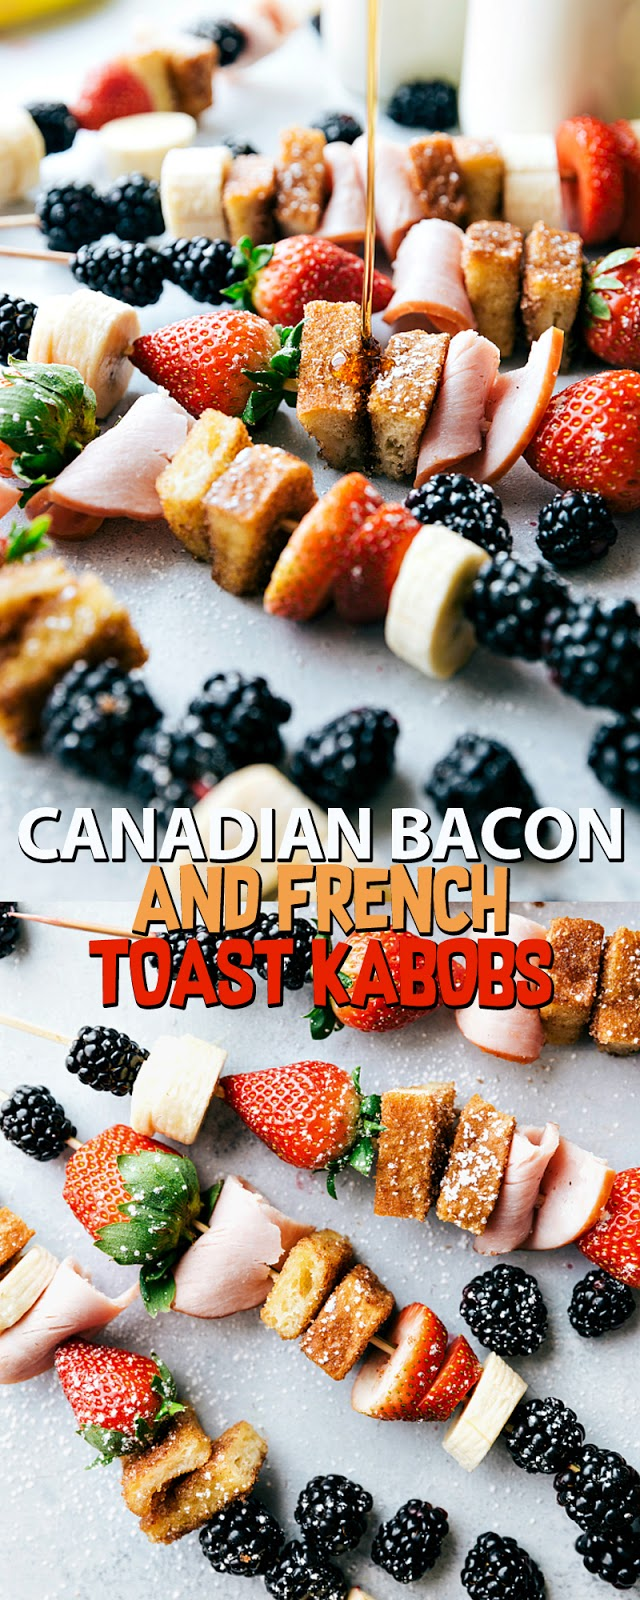 CANADIAN BACON AND FRENCH TOAST KABOBS